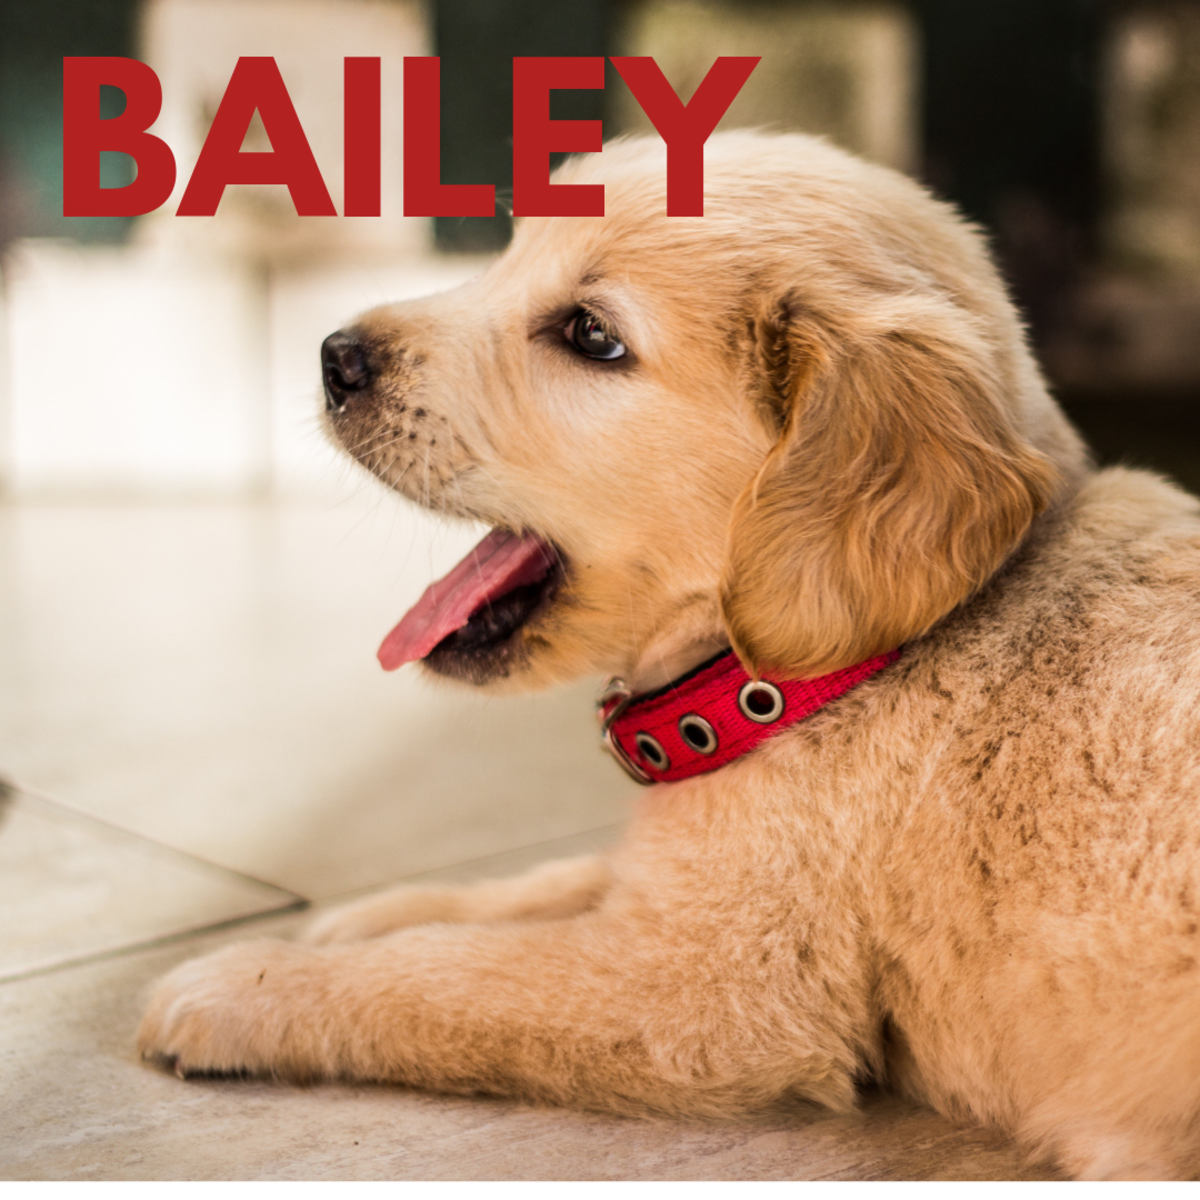 Is he a Bailey?